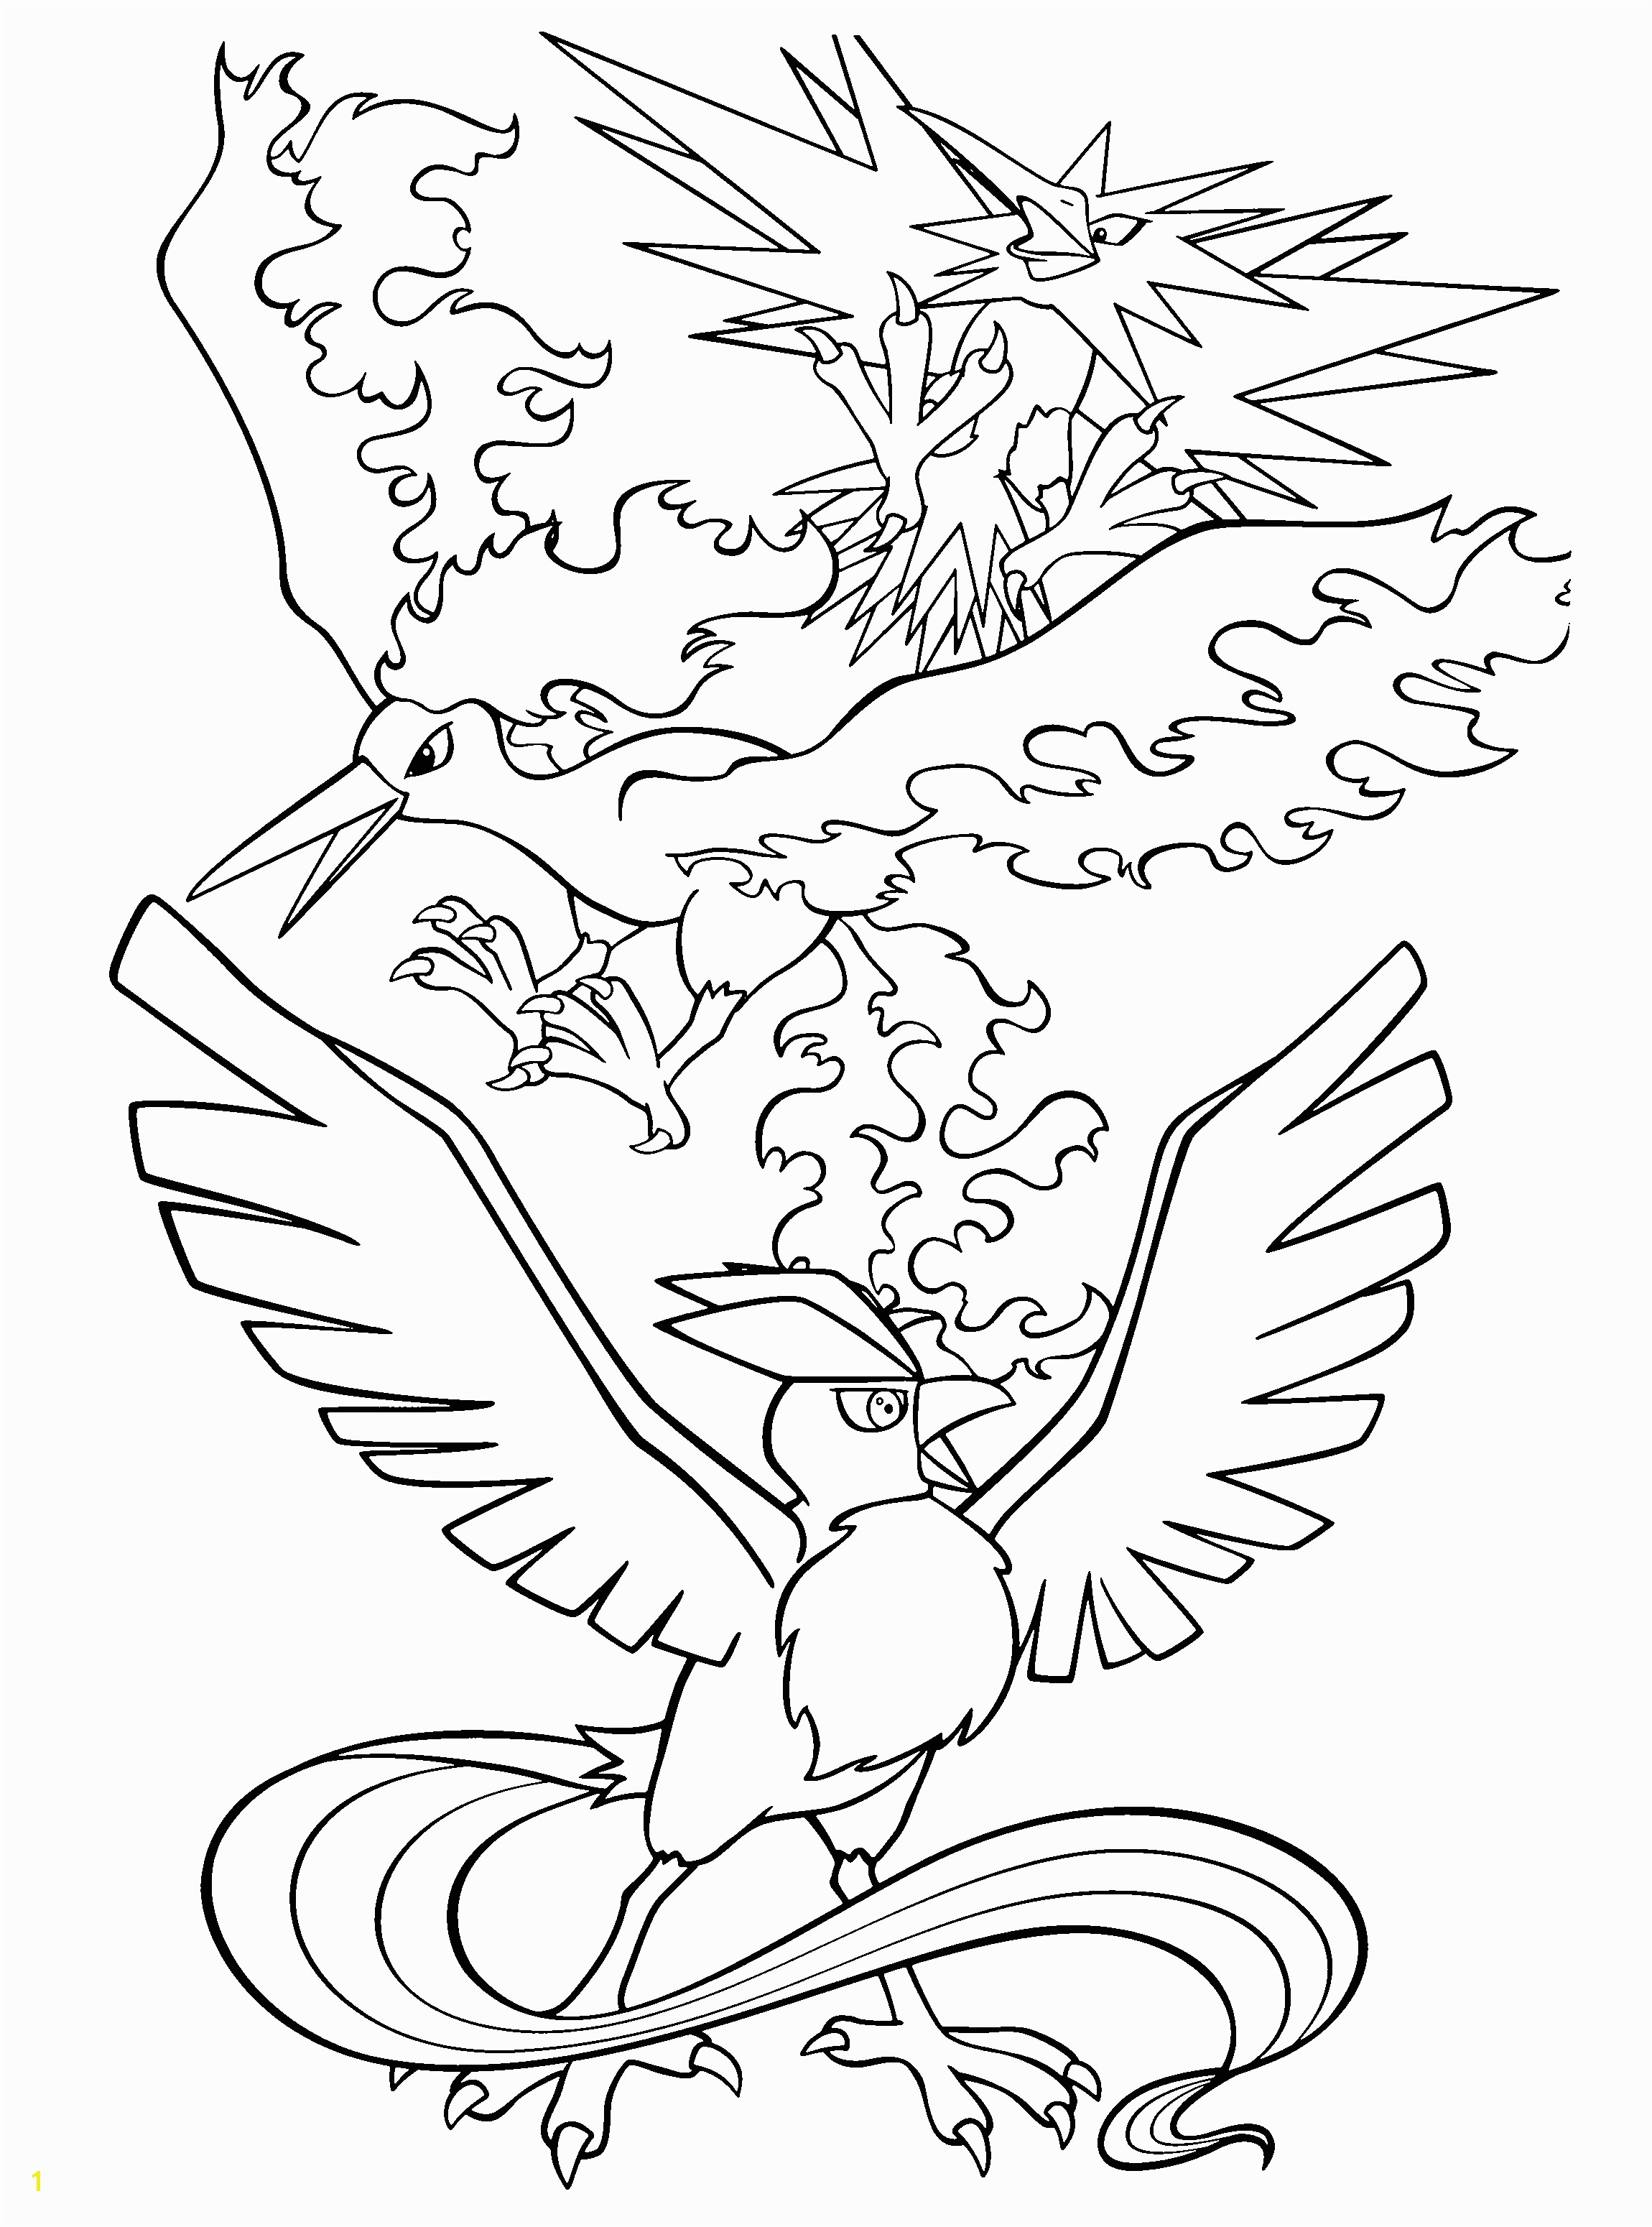 Legendary Pokemon Coloring Pages The Legendary Pokemon Colouring In